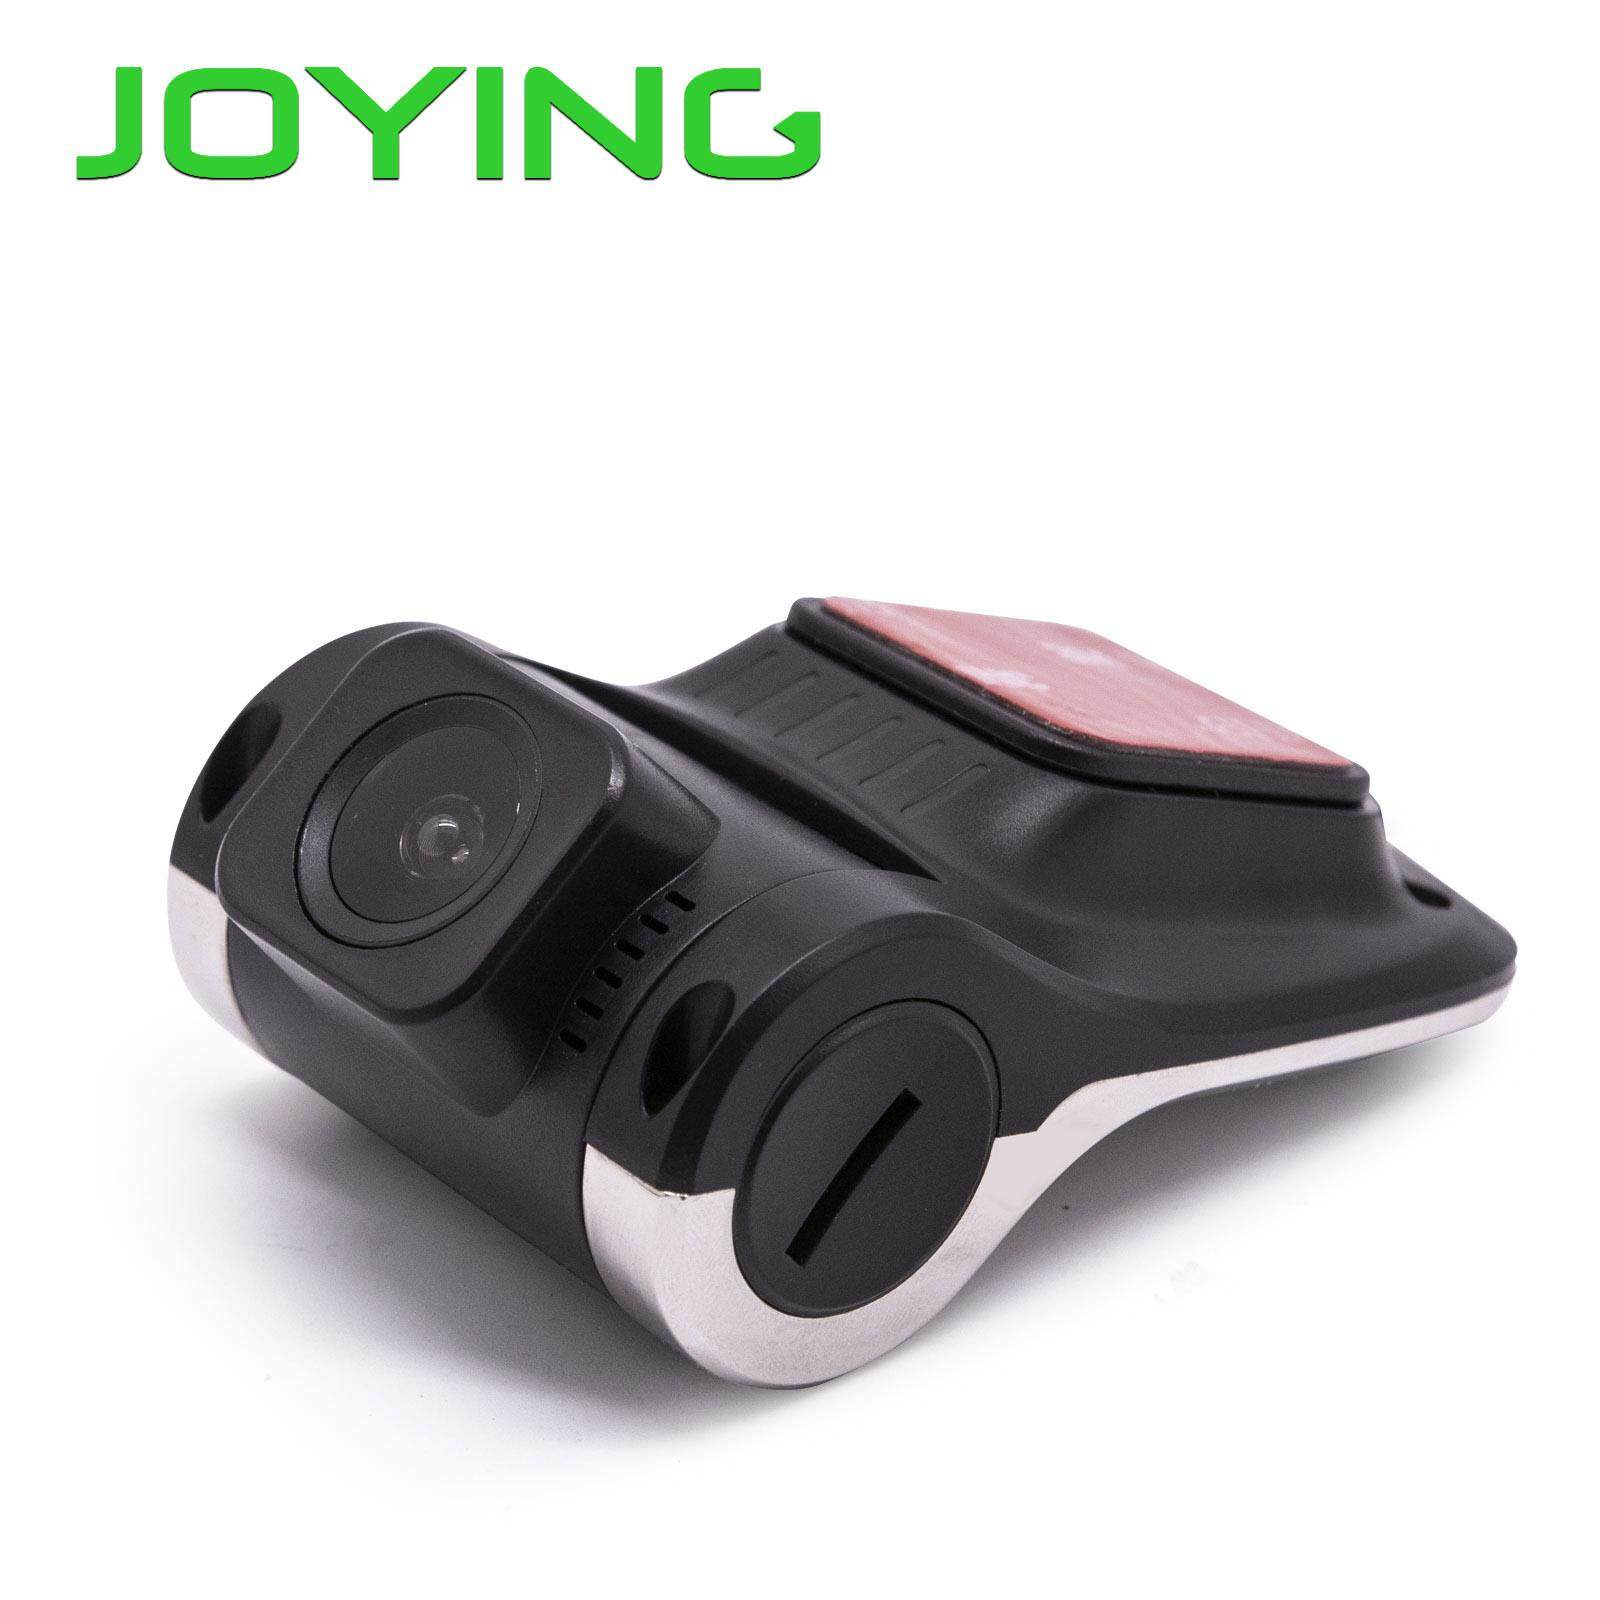 Joying USB front camera DVR dash camera 1280*720 driving recorder with  built-in APK online update for android head unit multimedia player support  ADAS